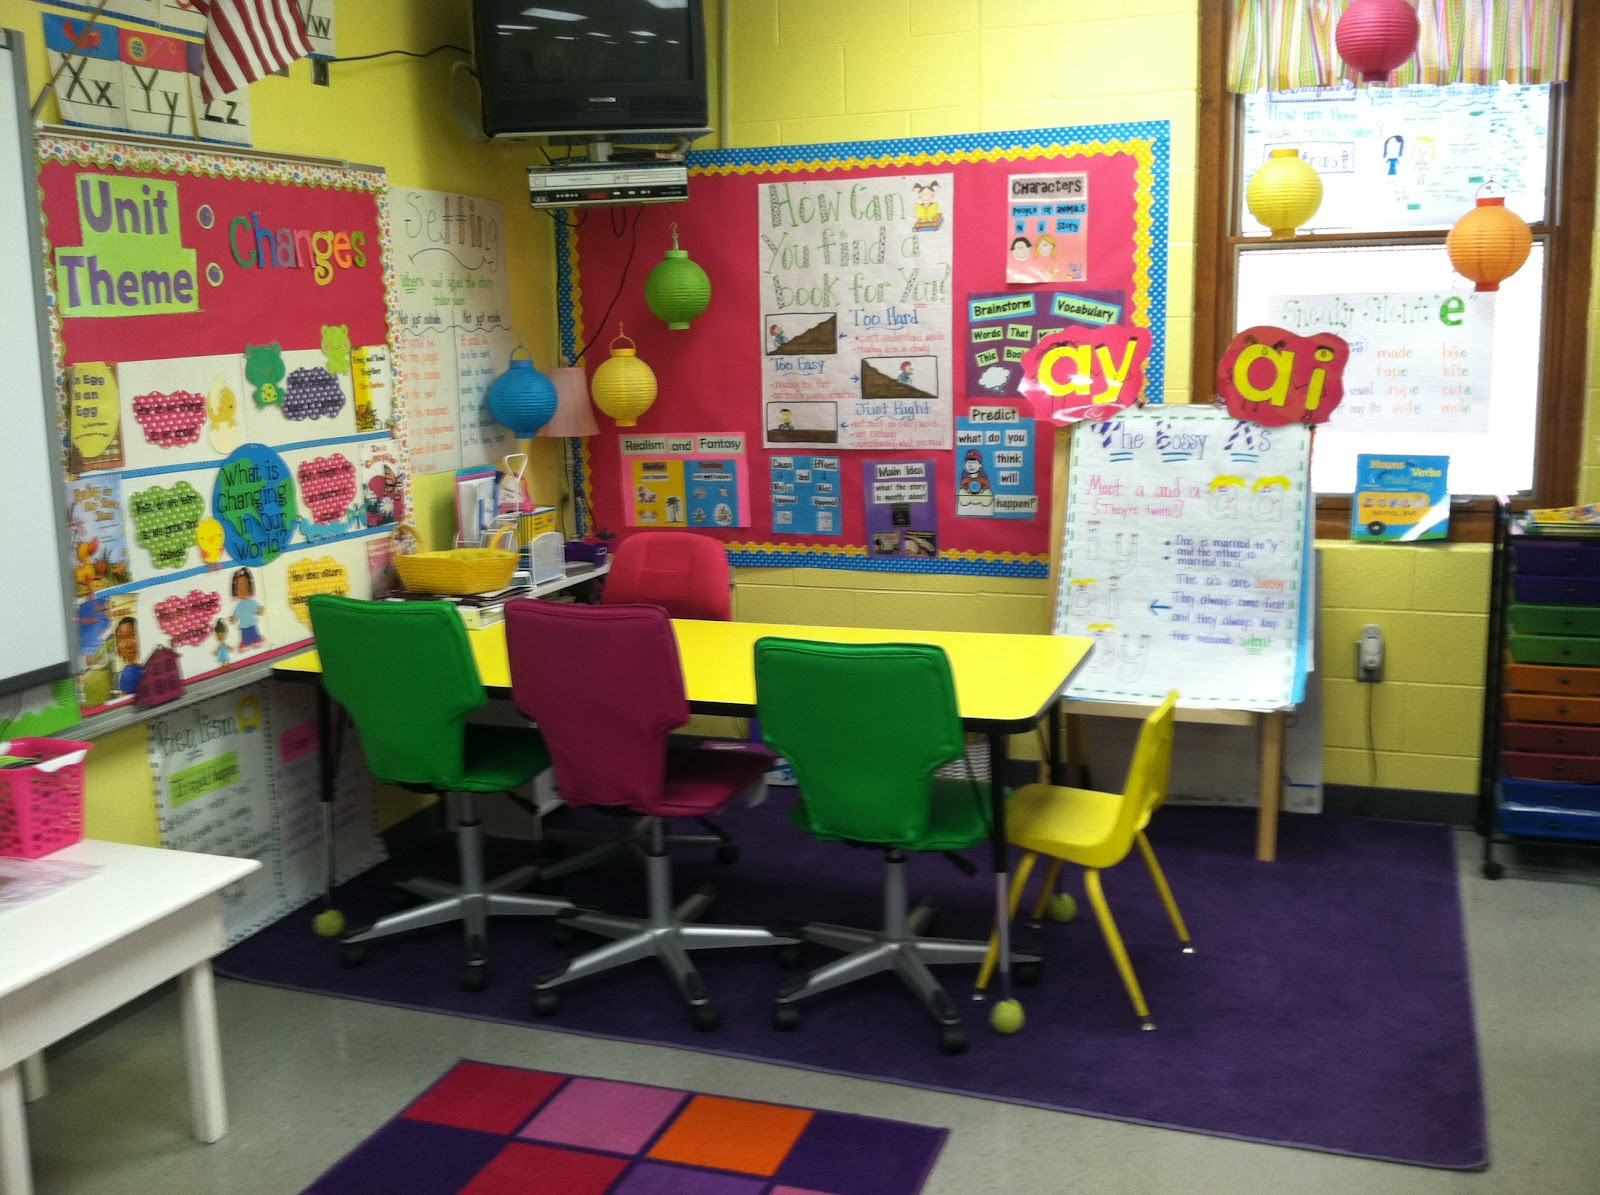 Classroom Grouping Ideas ~ Life in first grade dr seuss giveaway teaching ay and